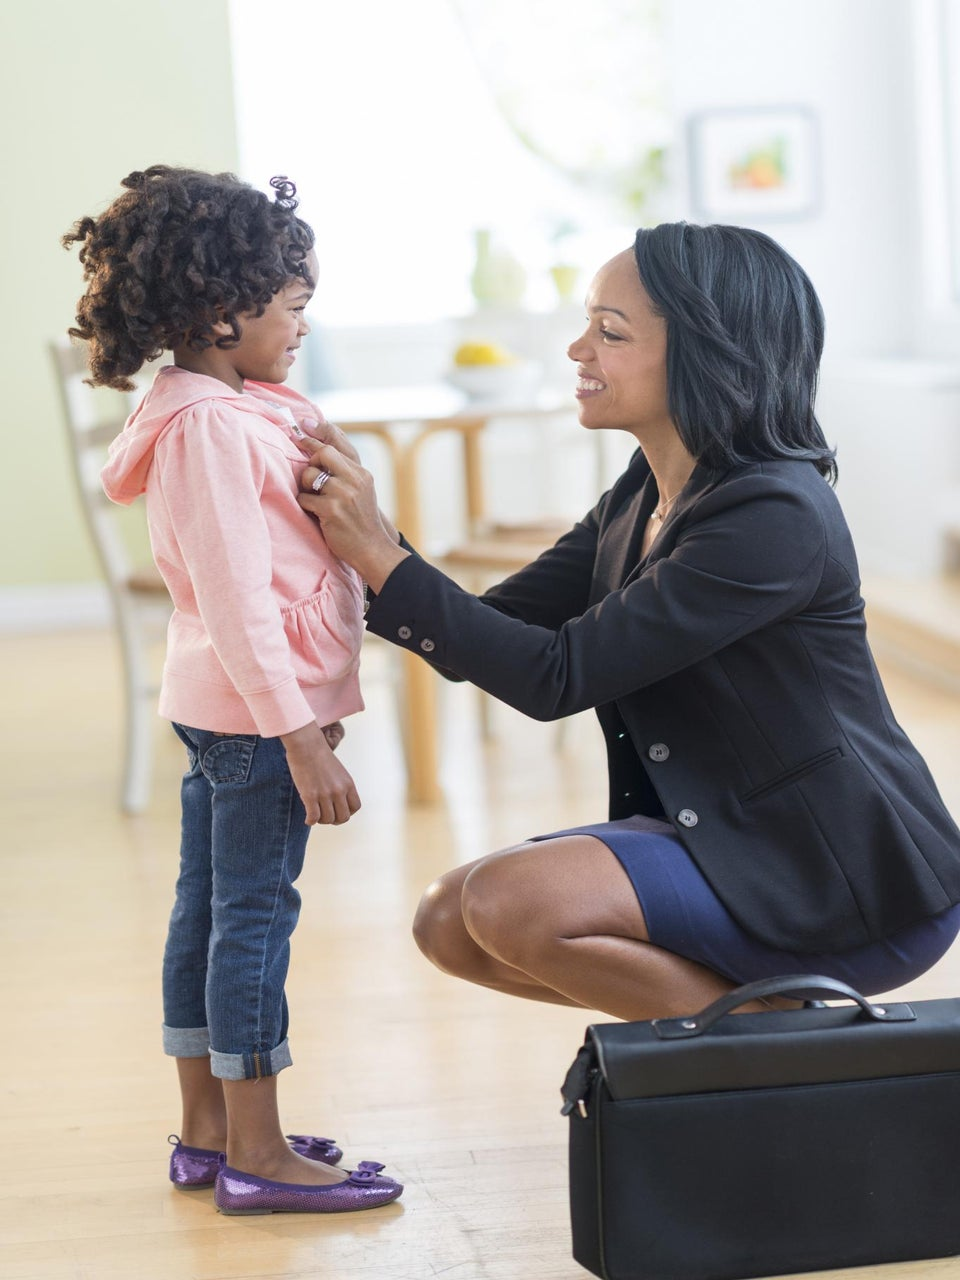 ESSENCE Poll: Did You Take Your Kid to Work With You Today?